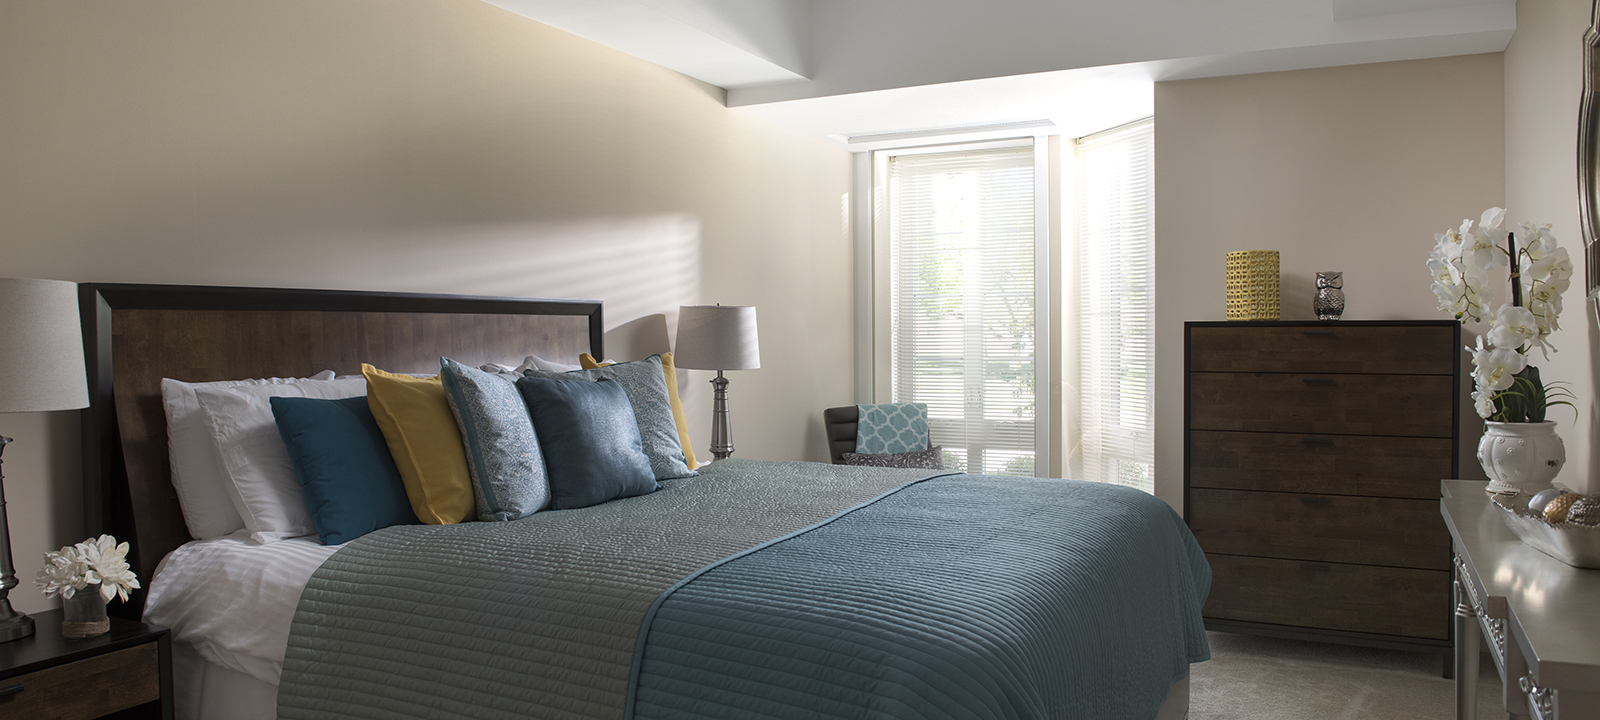 bed at Meridian at Eagleview apartments in Exton PA